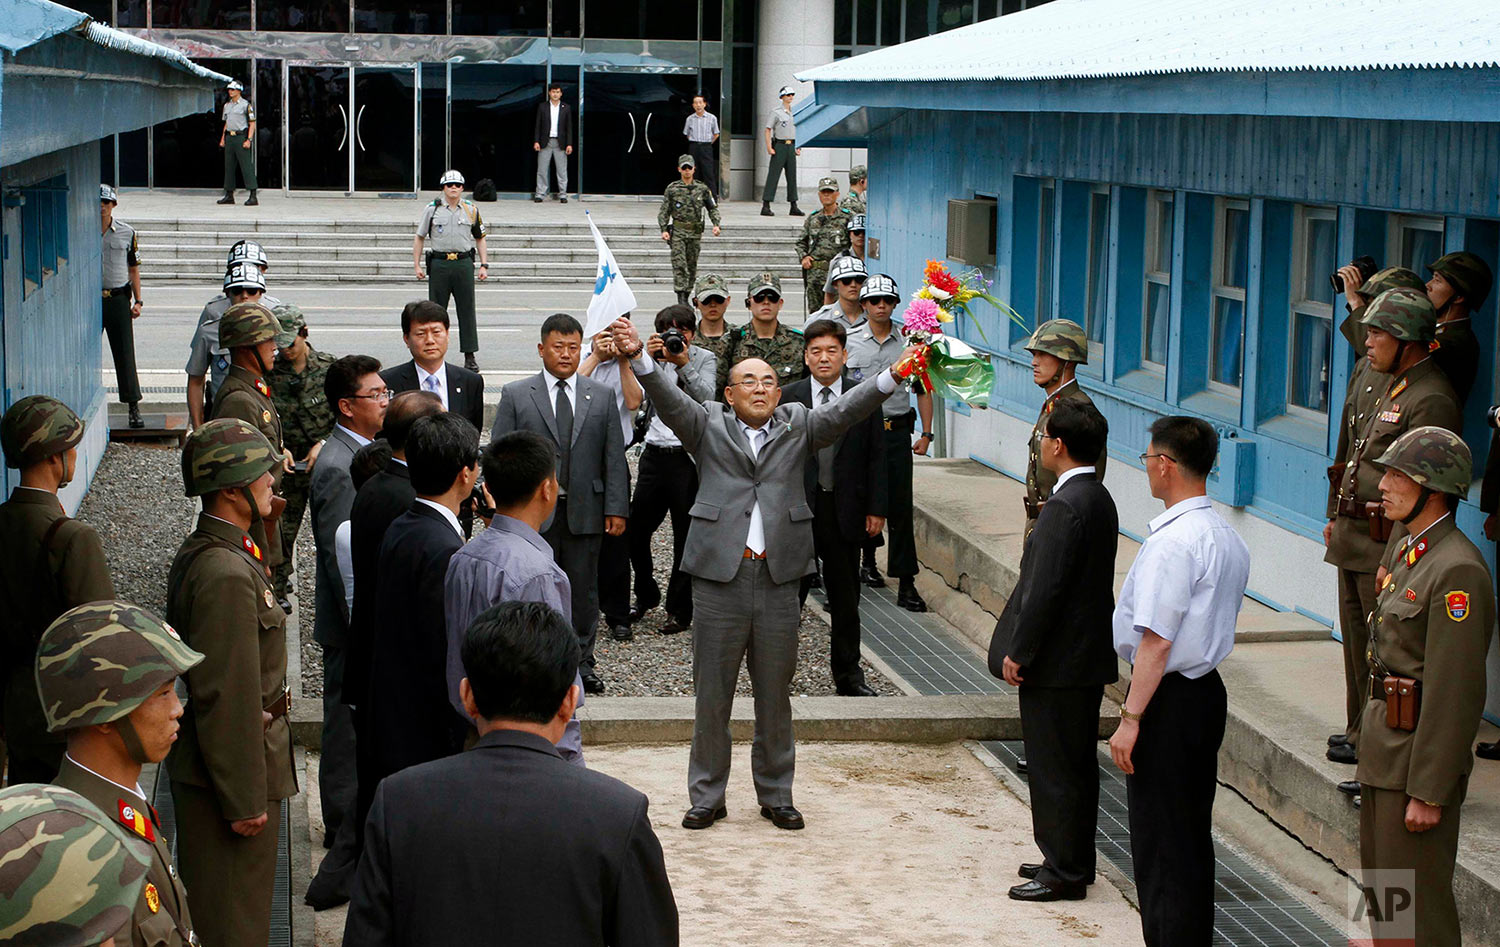 """Activist No Su-hui, center, shouts """"Long Live Reunification"""" in front of North Korean officials and soldiers, foreground, before crossing the demarcation line between North and South Korea where South Korean officials were waiting for him, at the Demilitarized Zone at Panmunjom, Korea, on July 5, 2012. South Korean officials immediately detained the activist for making an extended trip to Pyongyang without South Korean government approval as required by law. (AP Photo/Kim Kwang Hyon)"""